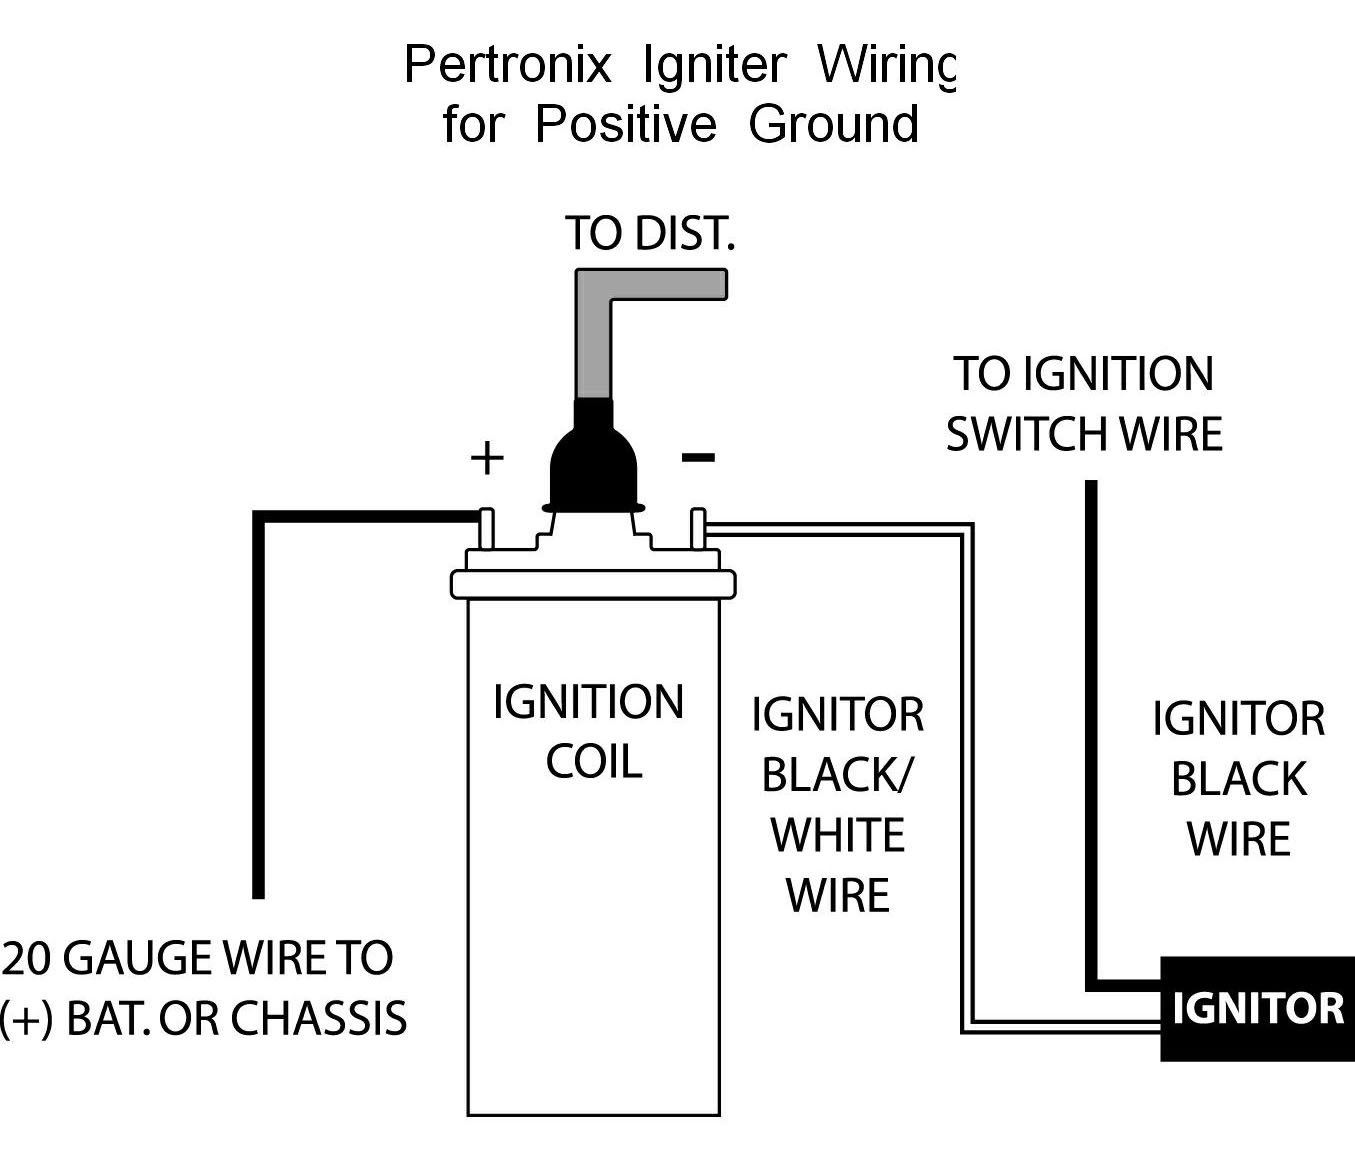 wire diagram positive ground pertronix positive ground wiring